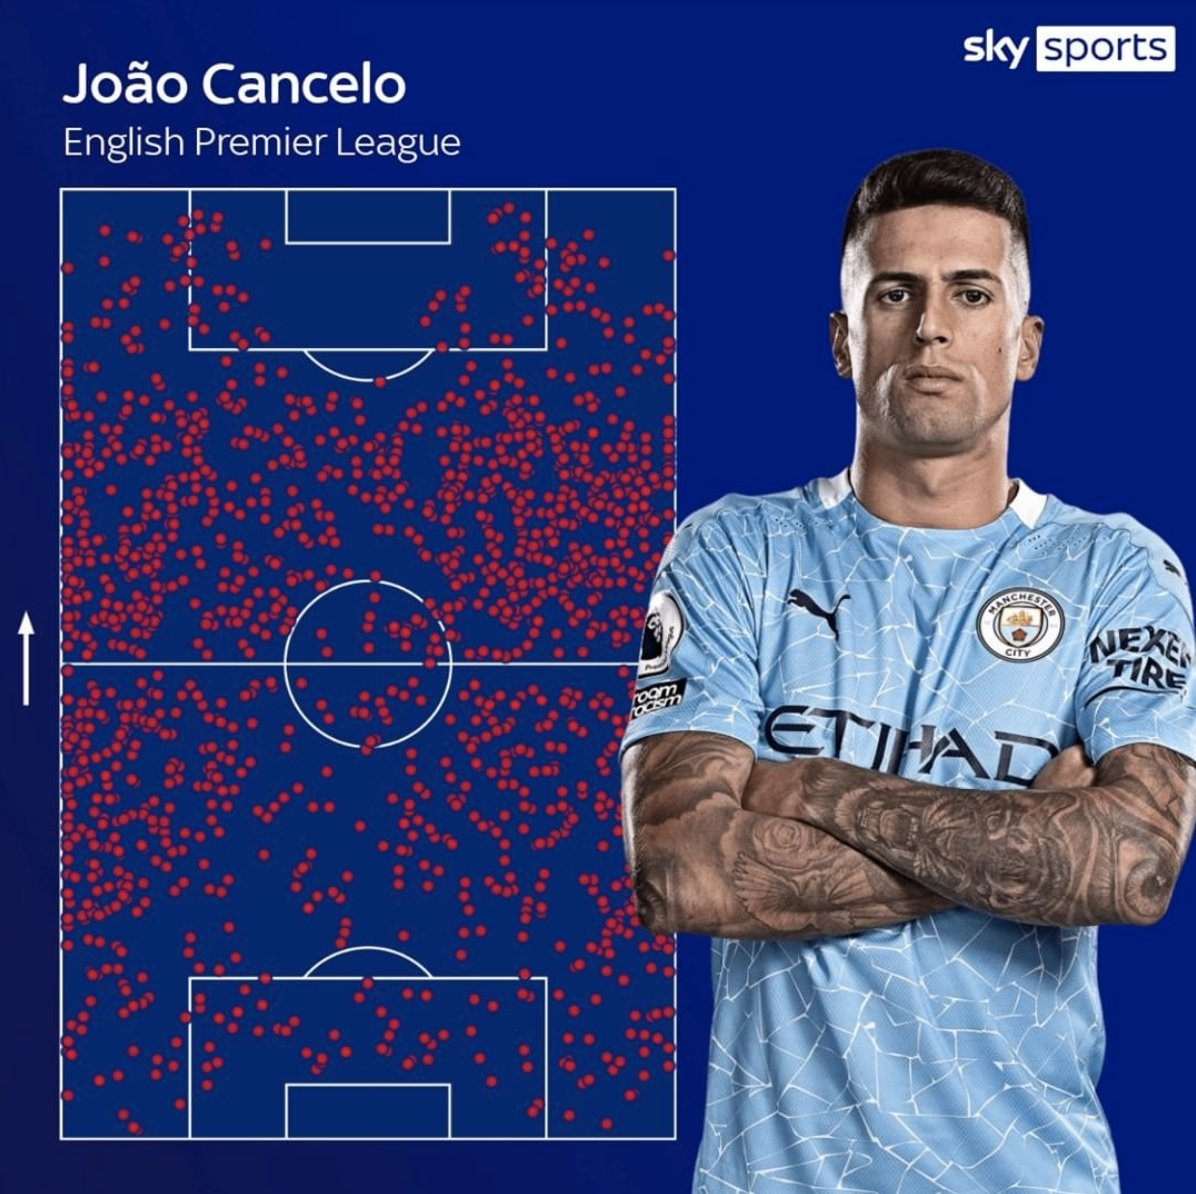 🤯 João Cancelo's touch map in the #PL for #ManCity this season is 𝗥𝗜𝗗𝗜𝗖𝗨𝗟𝗢𝗨𝗦. He has also created 30 chances - more than any other defender in the league! 🤩🇵🇹 @ManCity // via @SkySports